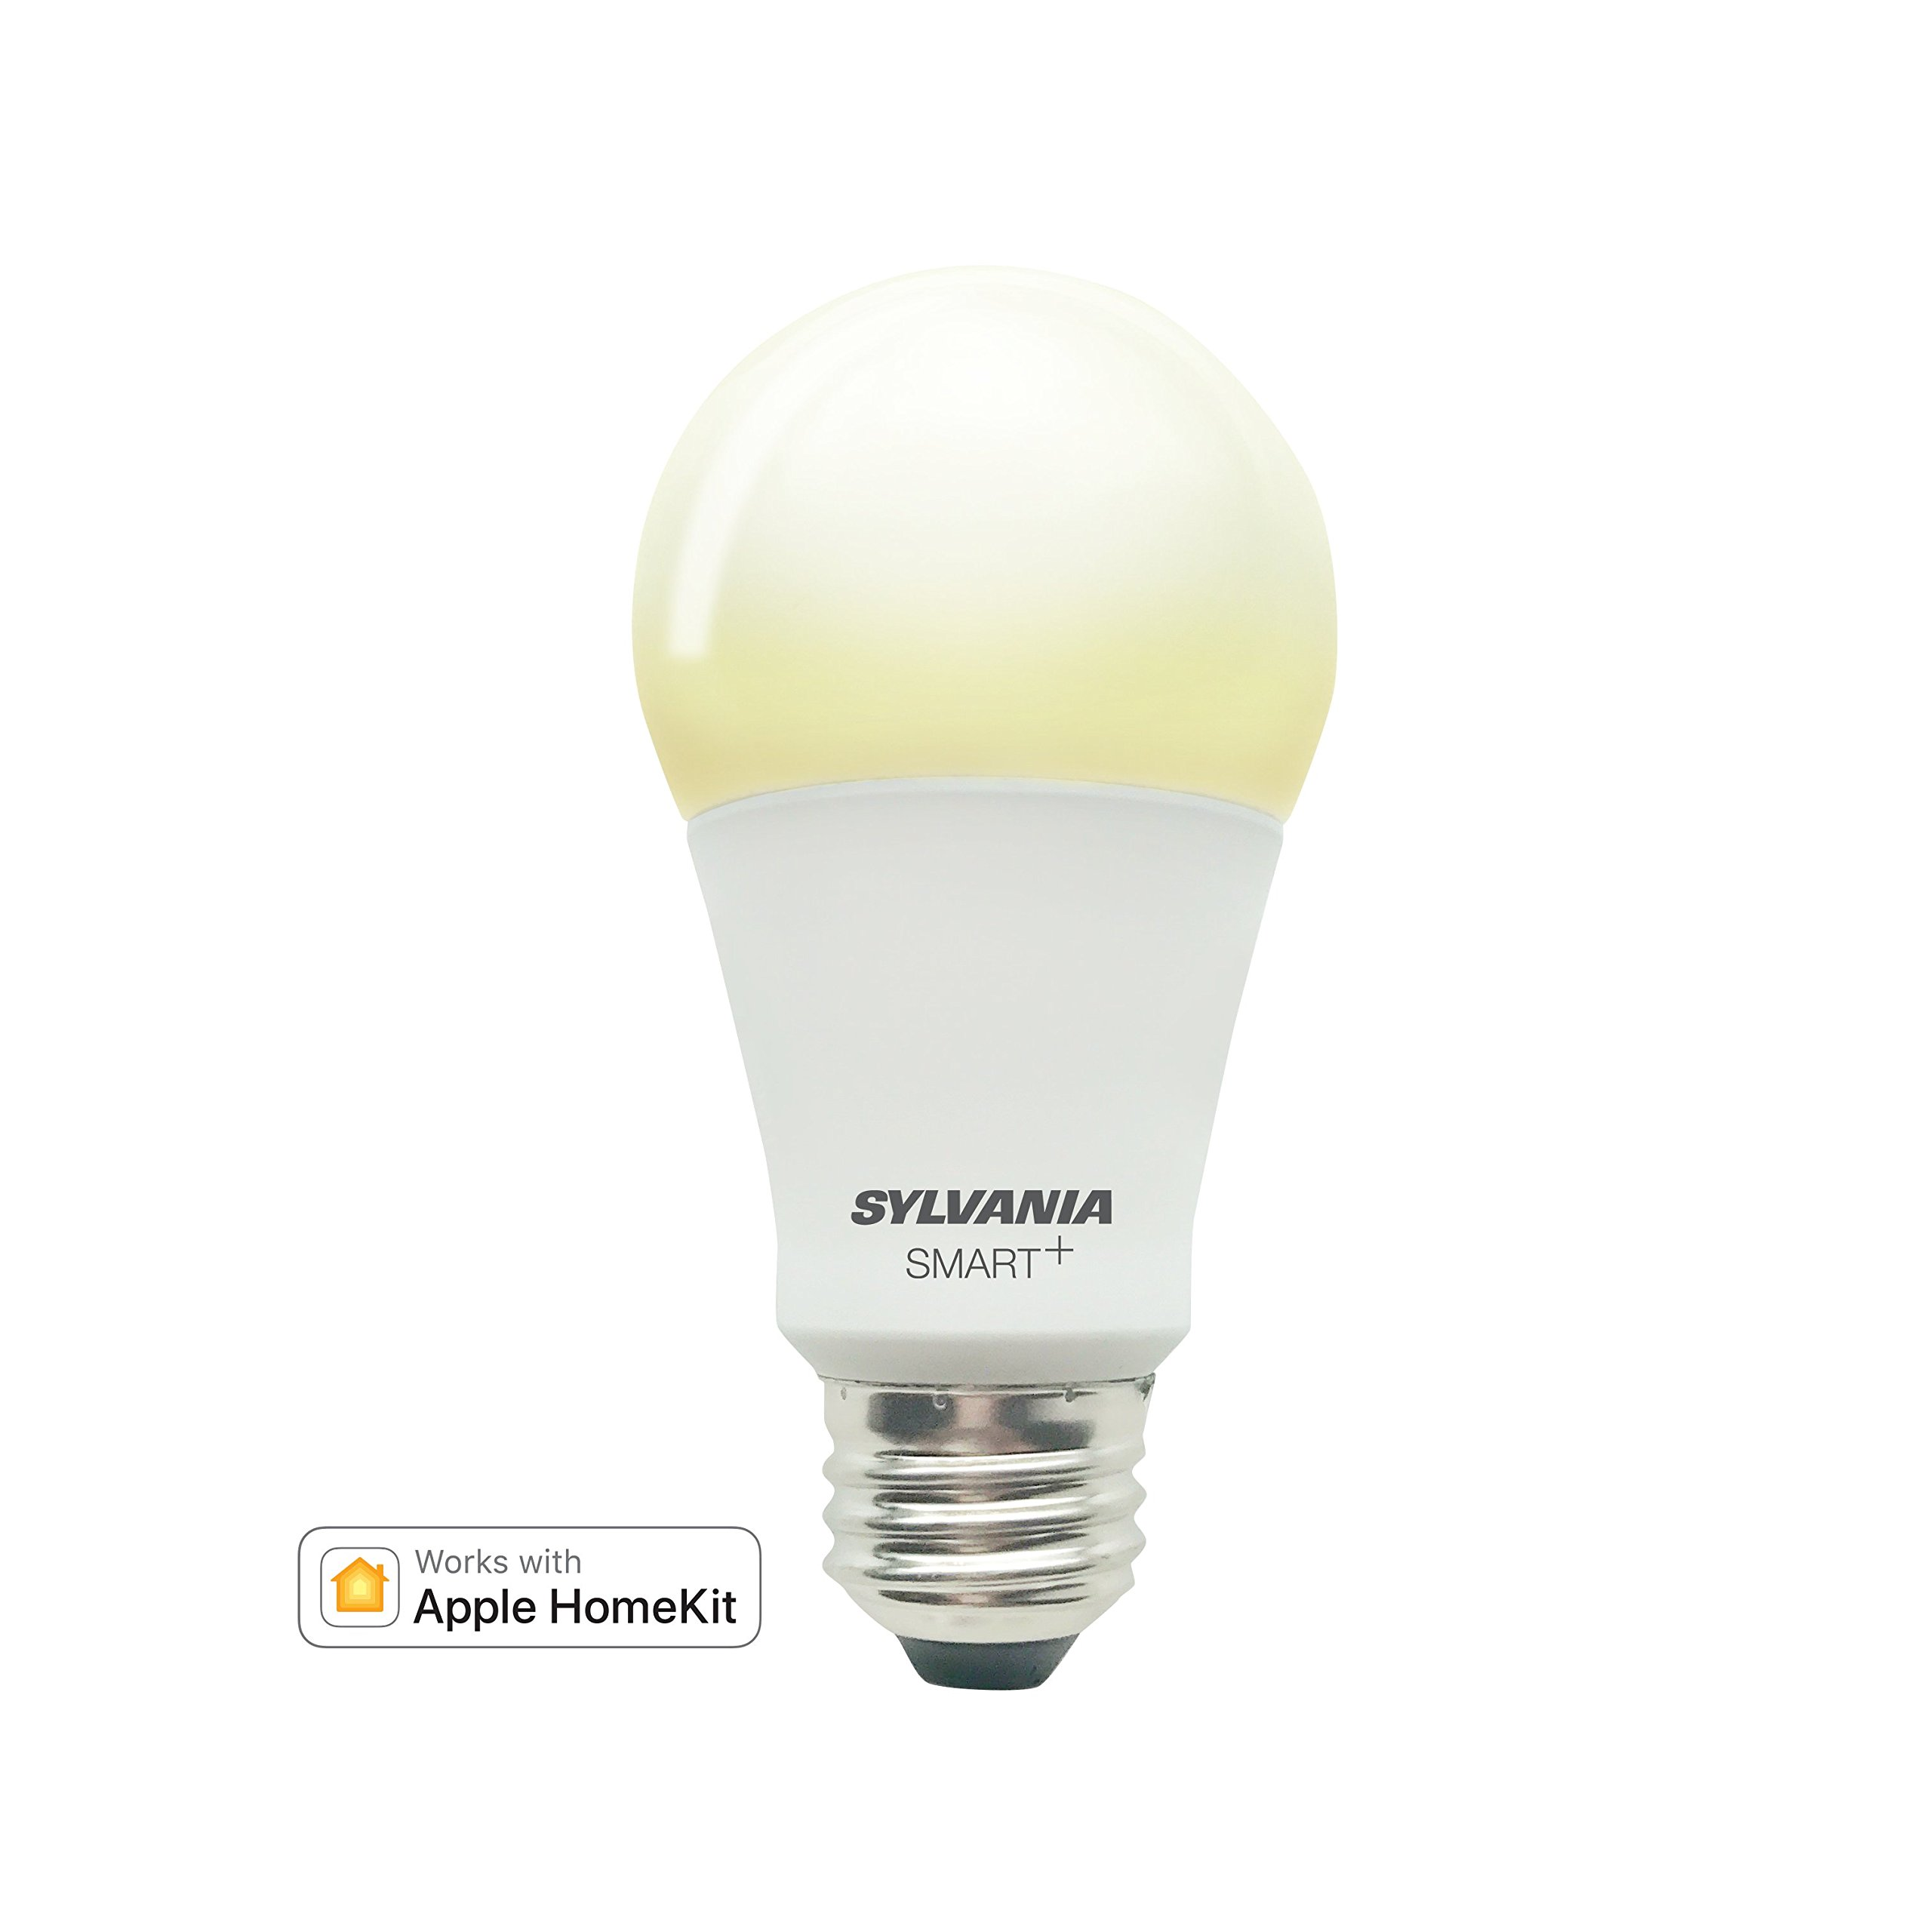 Sylvania Smart Home 74579 A19 Soft White LED Bulb, Works with Apple HomeKit and Siri Voice Control, No Hub Required, Dimamble